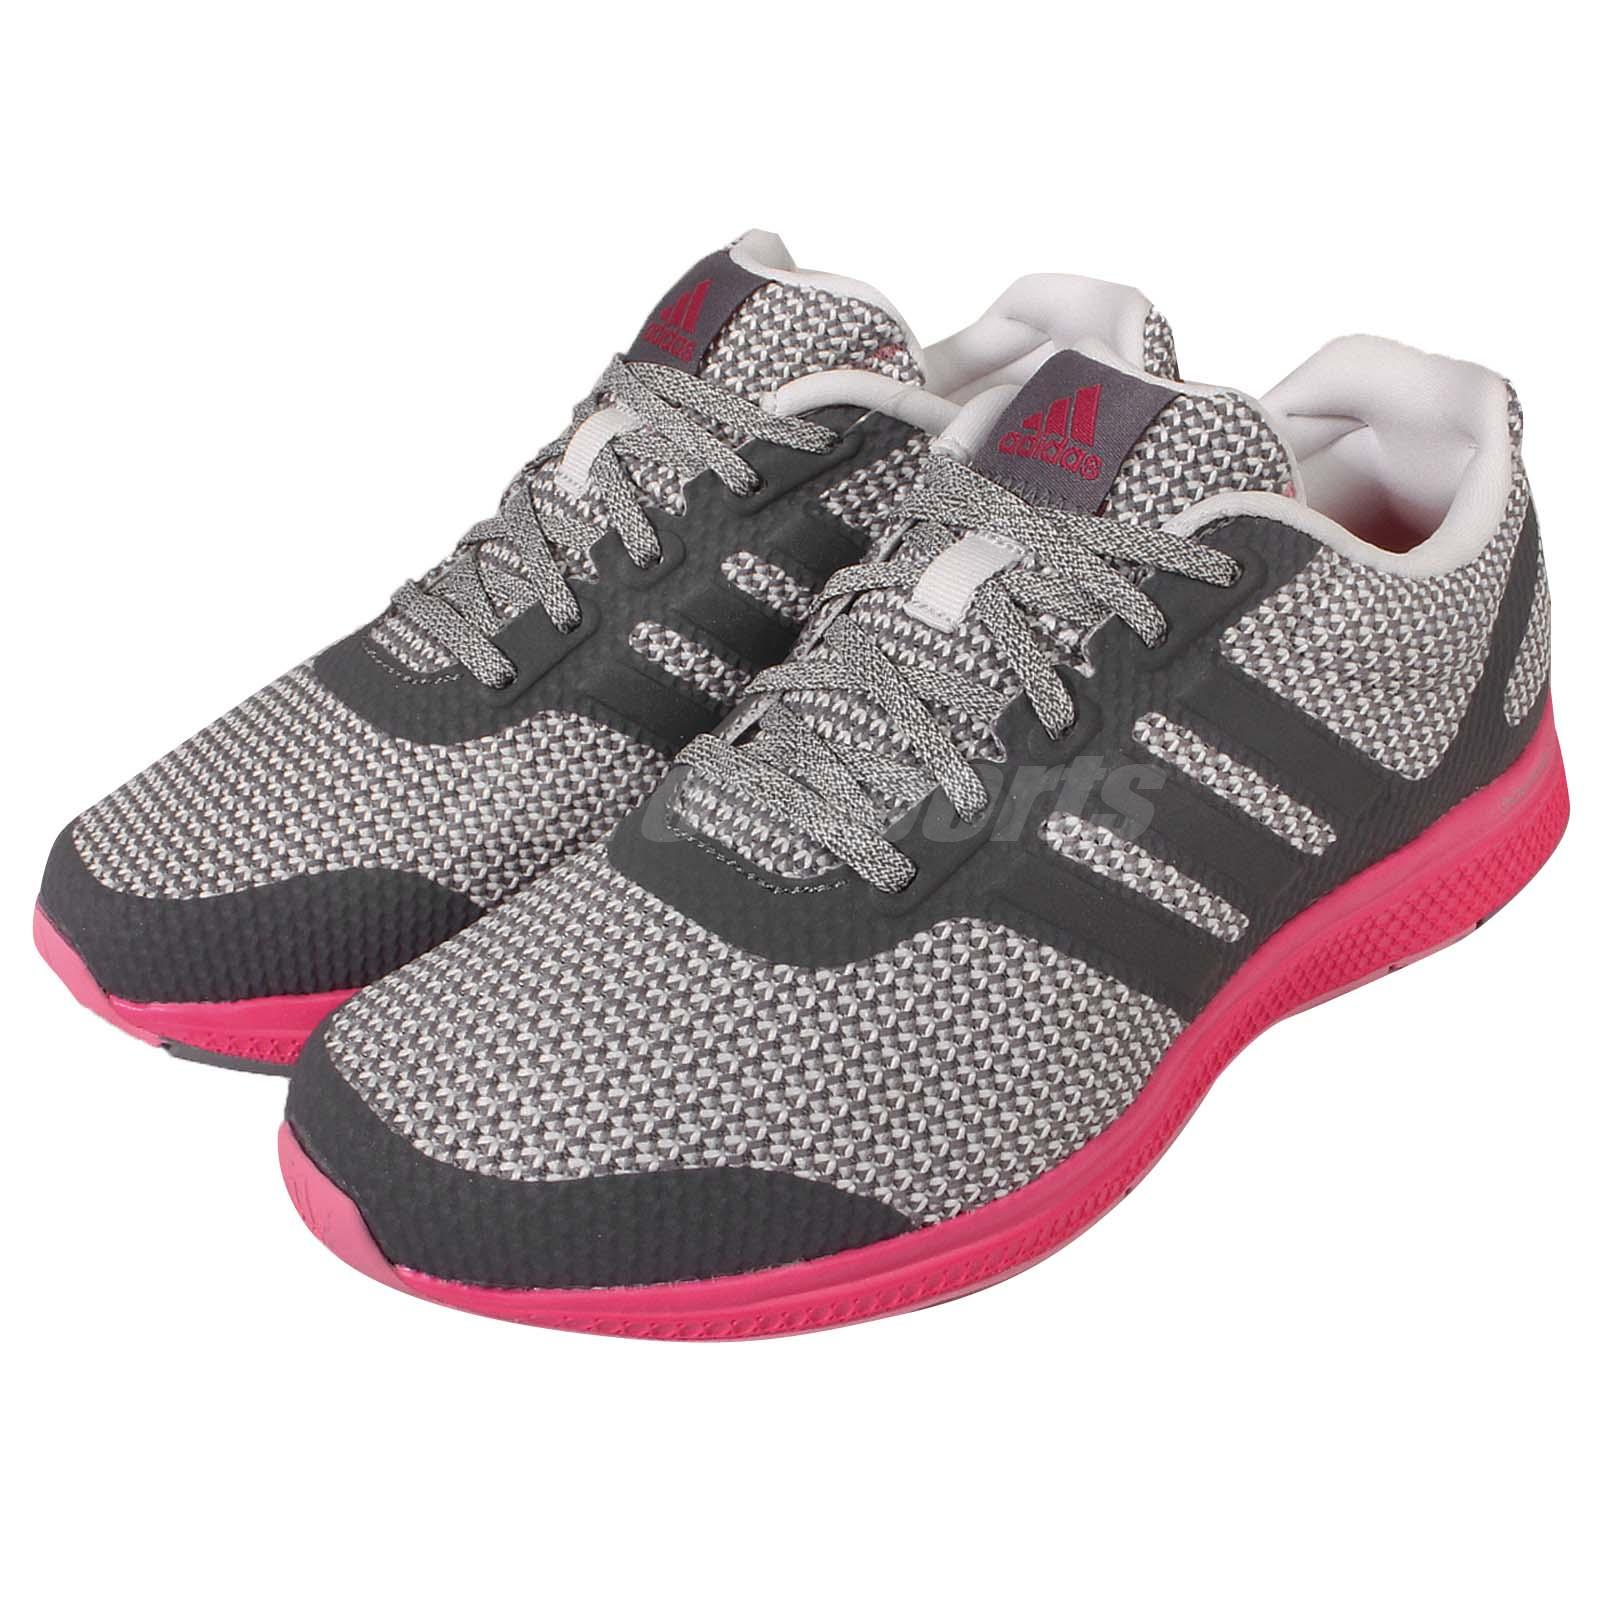 adidas Mana Bounce W Grey Pink Womens Running Shoes Trainers Sneakers AF4116